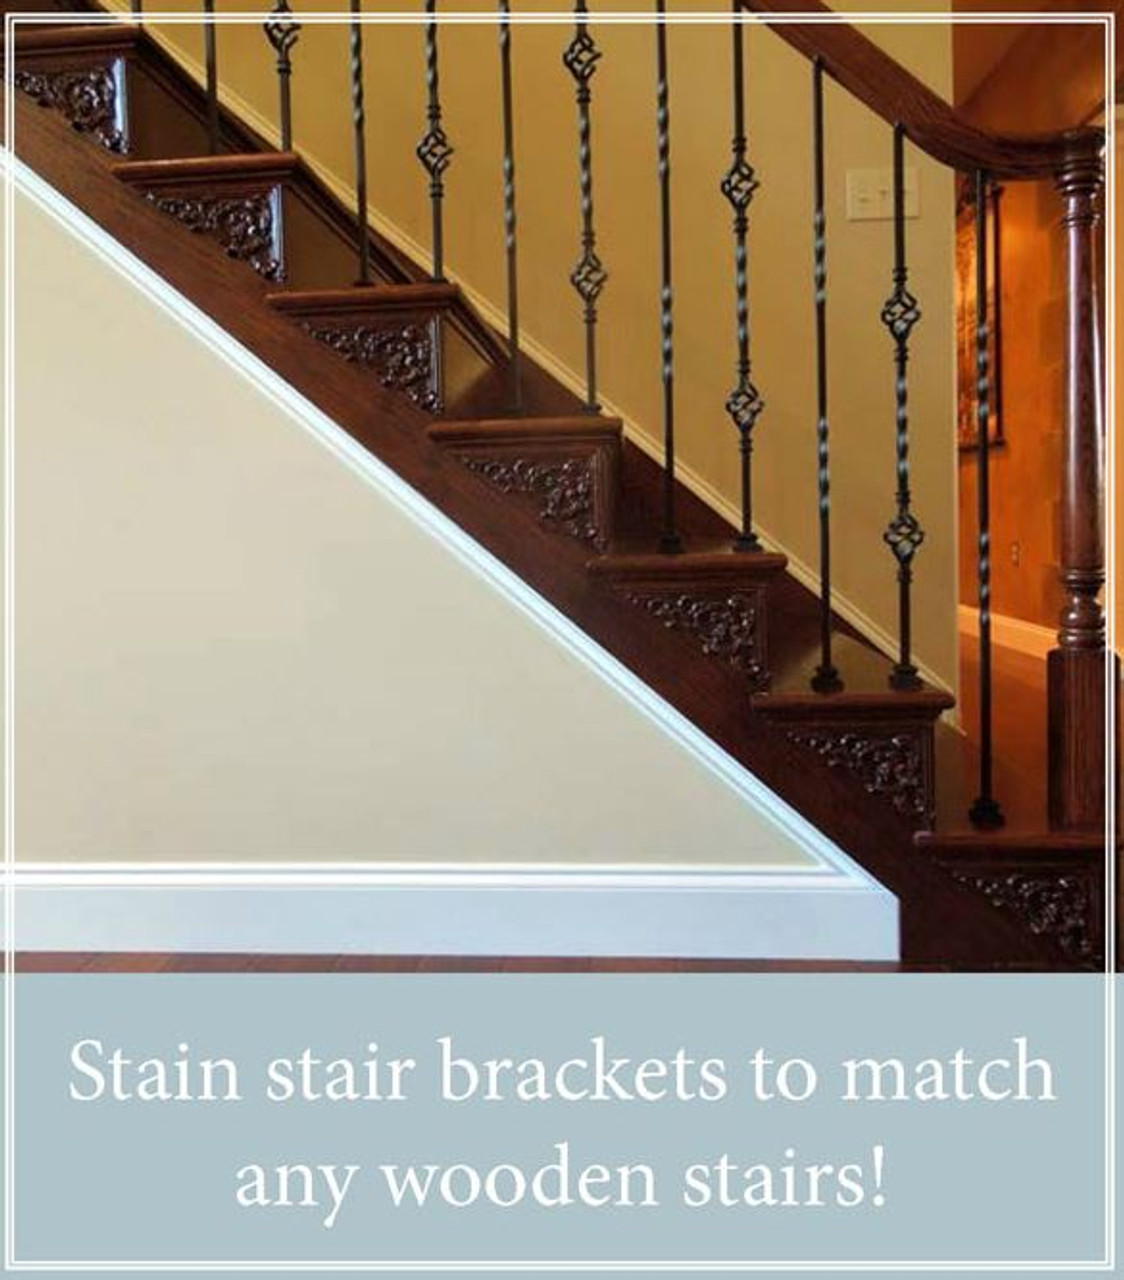 Stair Brackets can be stained to match hardwoods installed